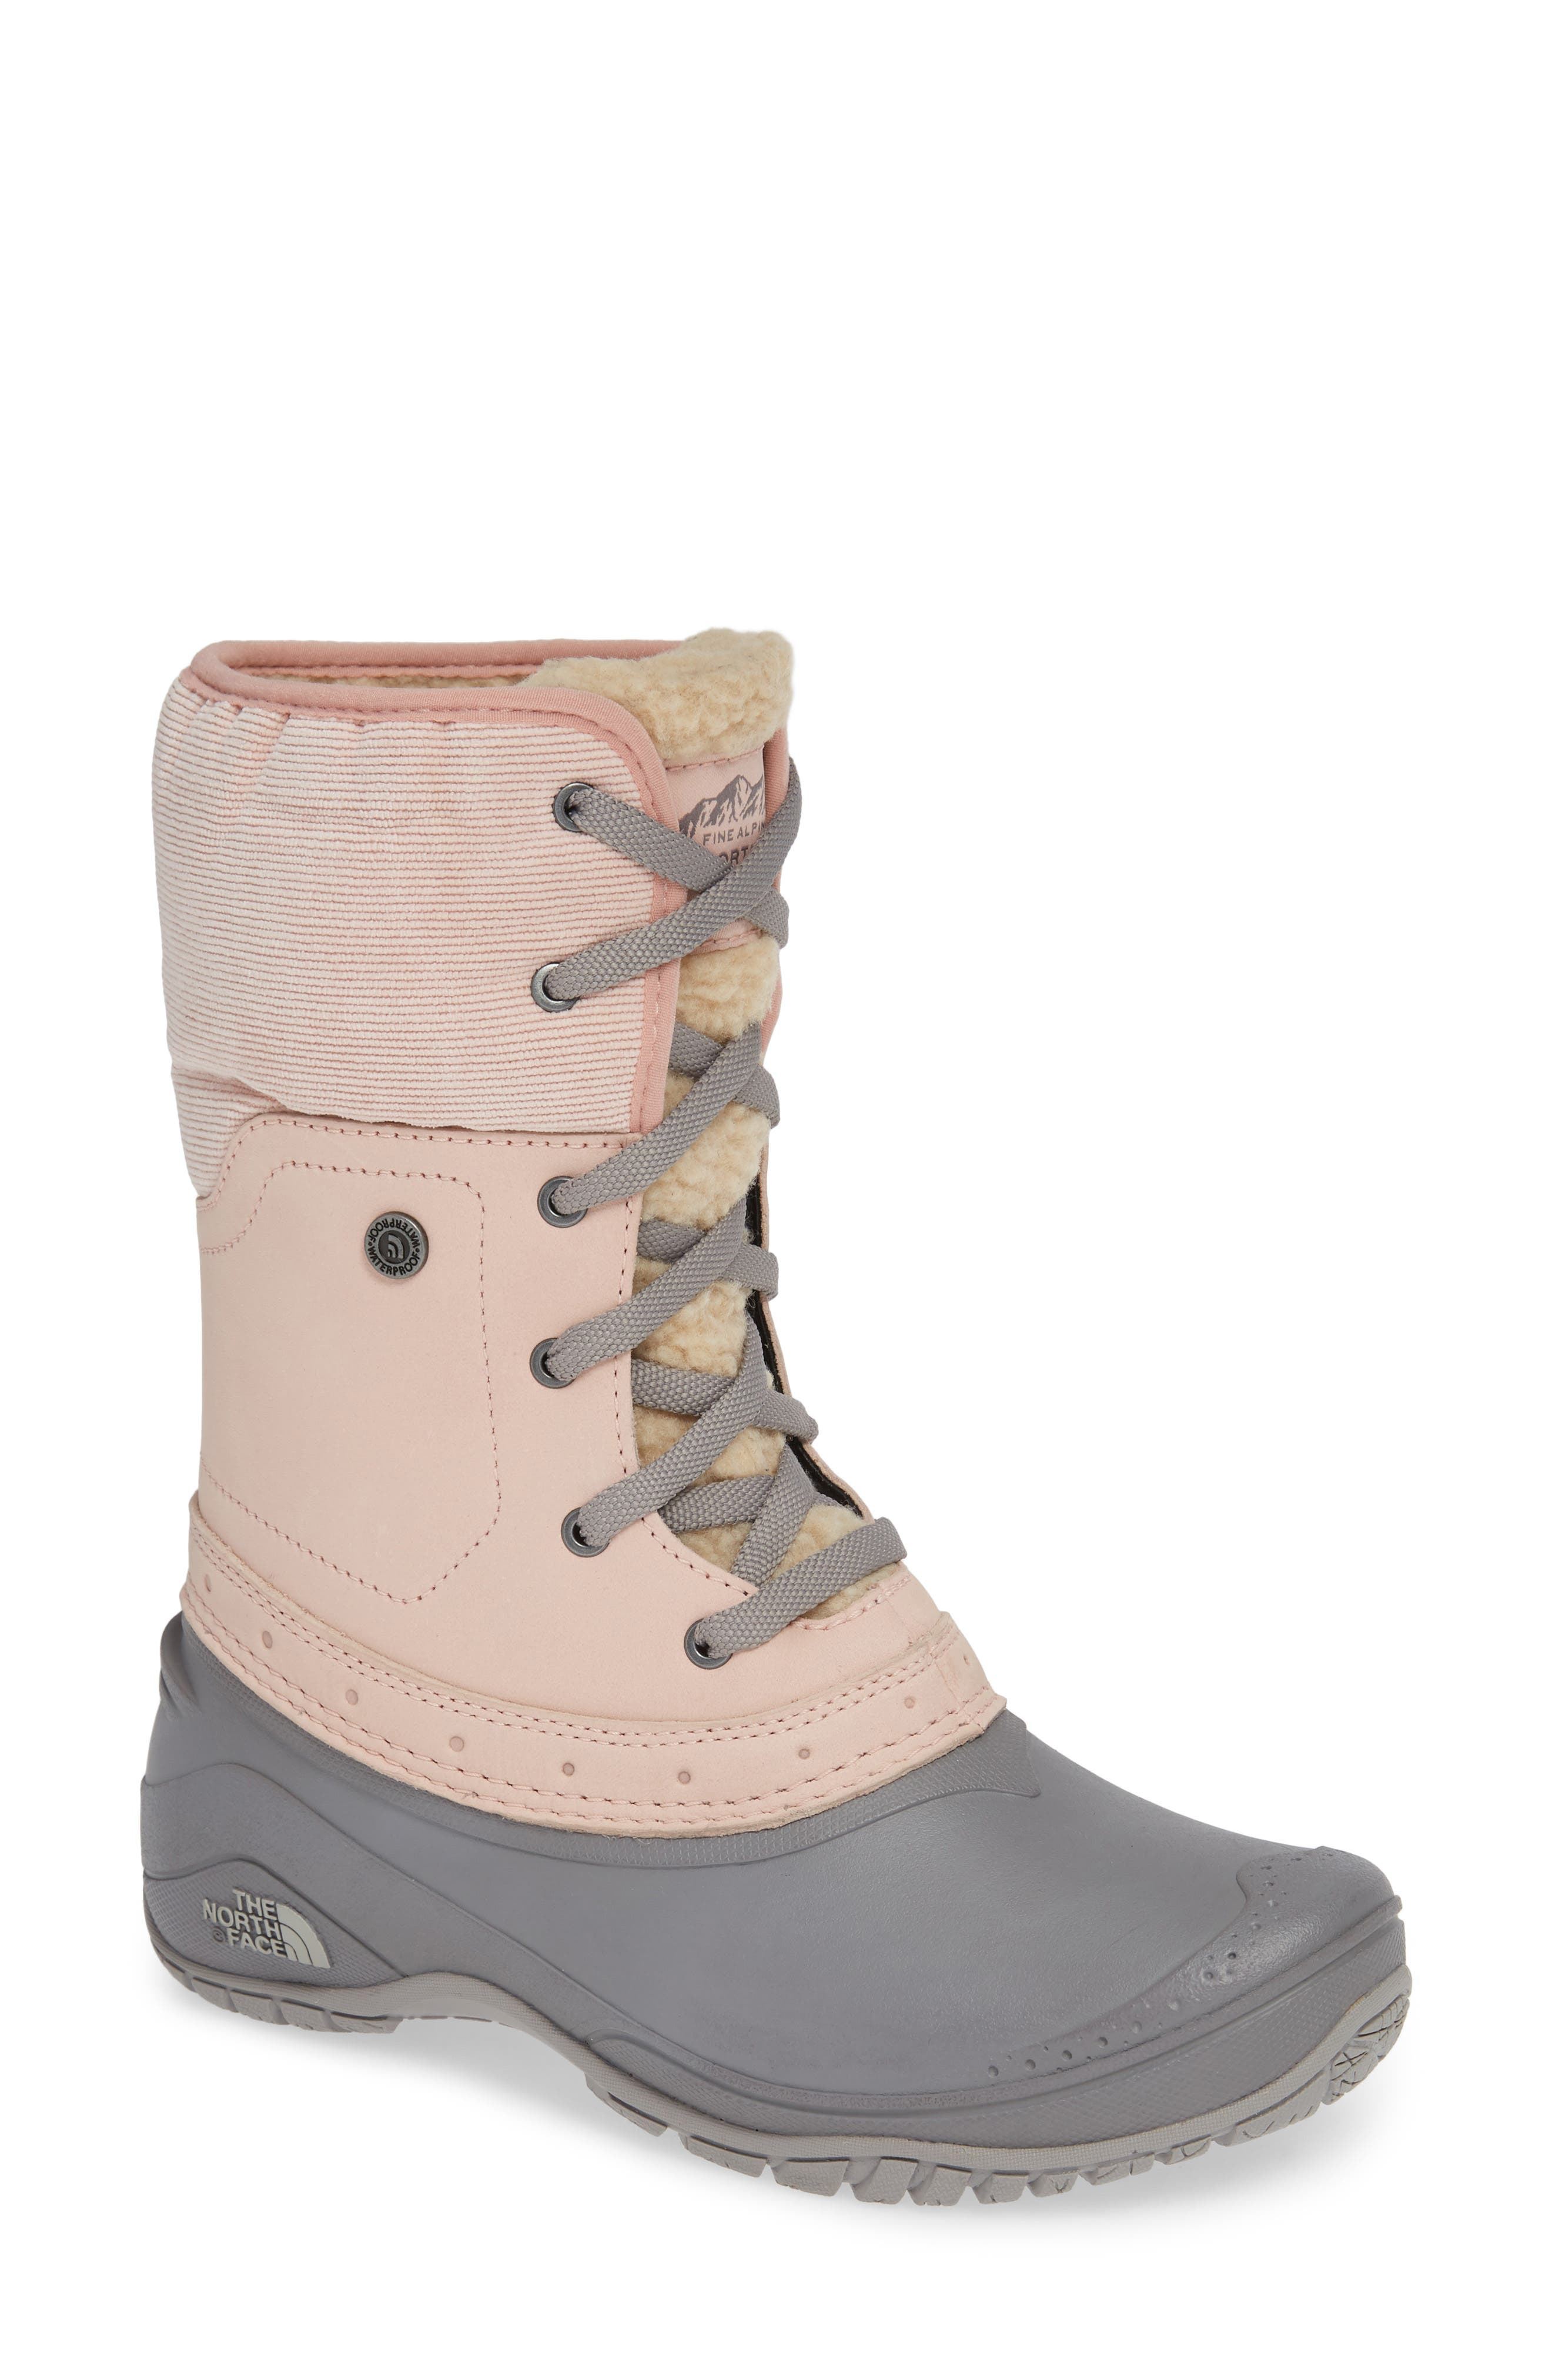 The North Face Shellista Roll Cuff Waterproof Insulated Winter Boot- Pink